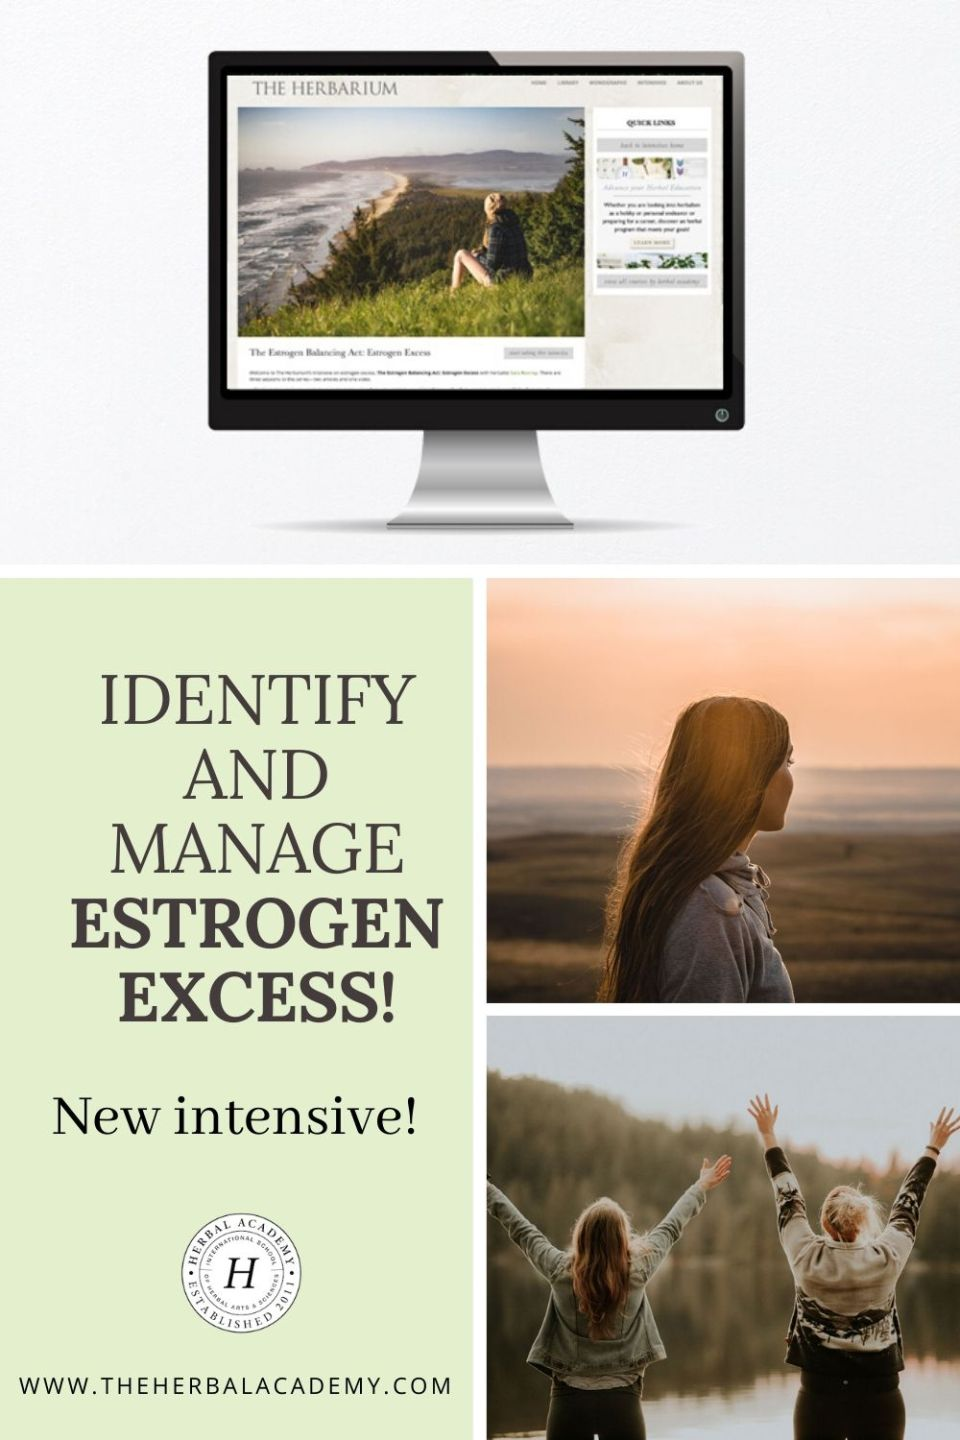 New Intensive! Identify and Manage Estrogen Excess  | Herbal Academy | We've partnered with Sara Rooney, a medical herbalist specializing in hormonal imbalance, to release our newest Herbarium intensive about estrogen excess.